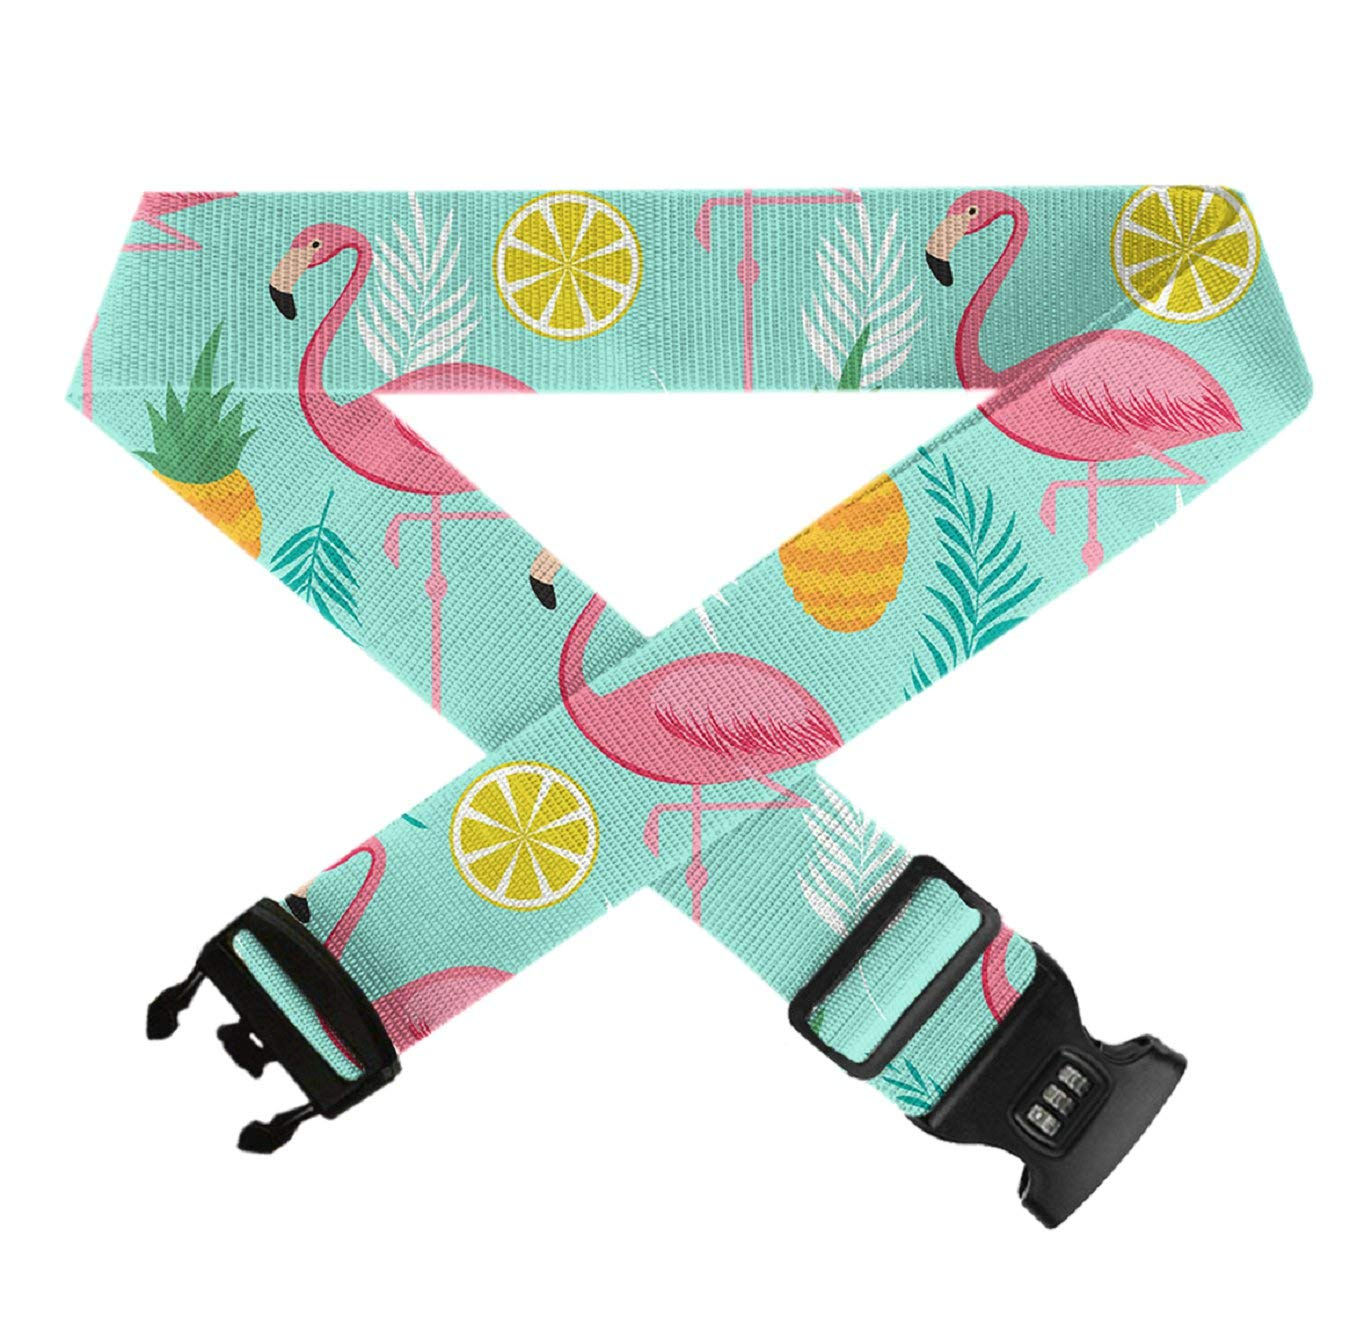 Pink Flamingo Pineapples Heavy Duty Luggage Strap 1 Pack GLORY ART TSA Approved Lock Adjustable Travel Belt for 20-32 Suitcase